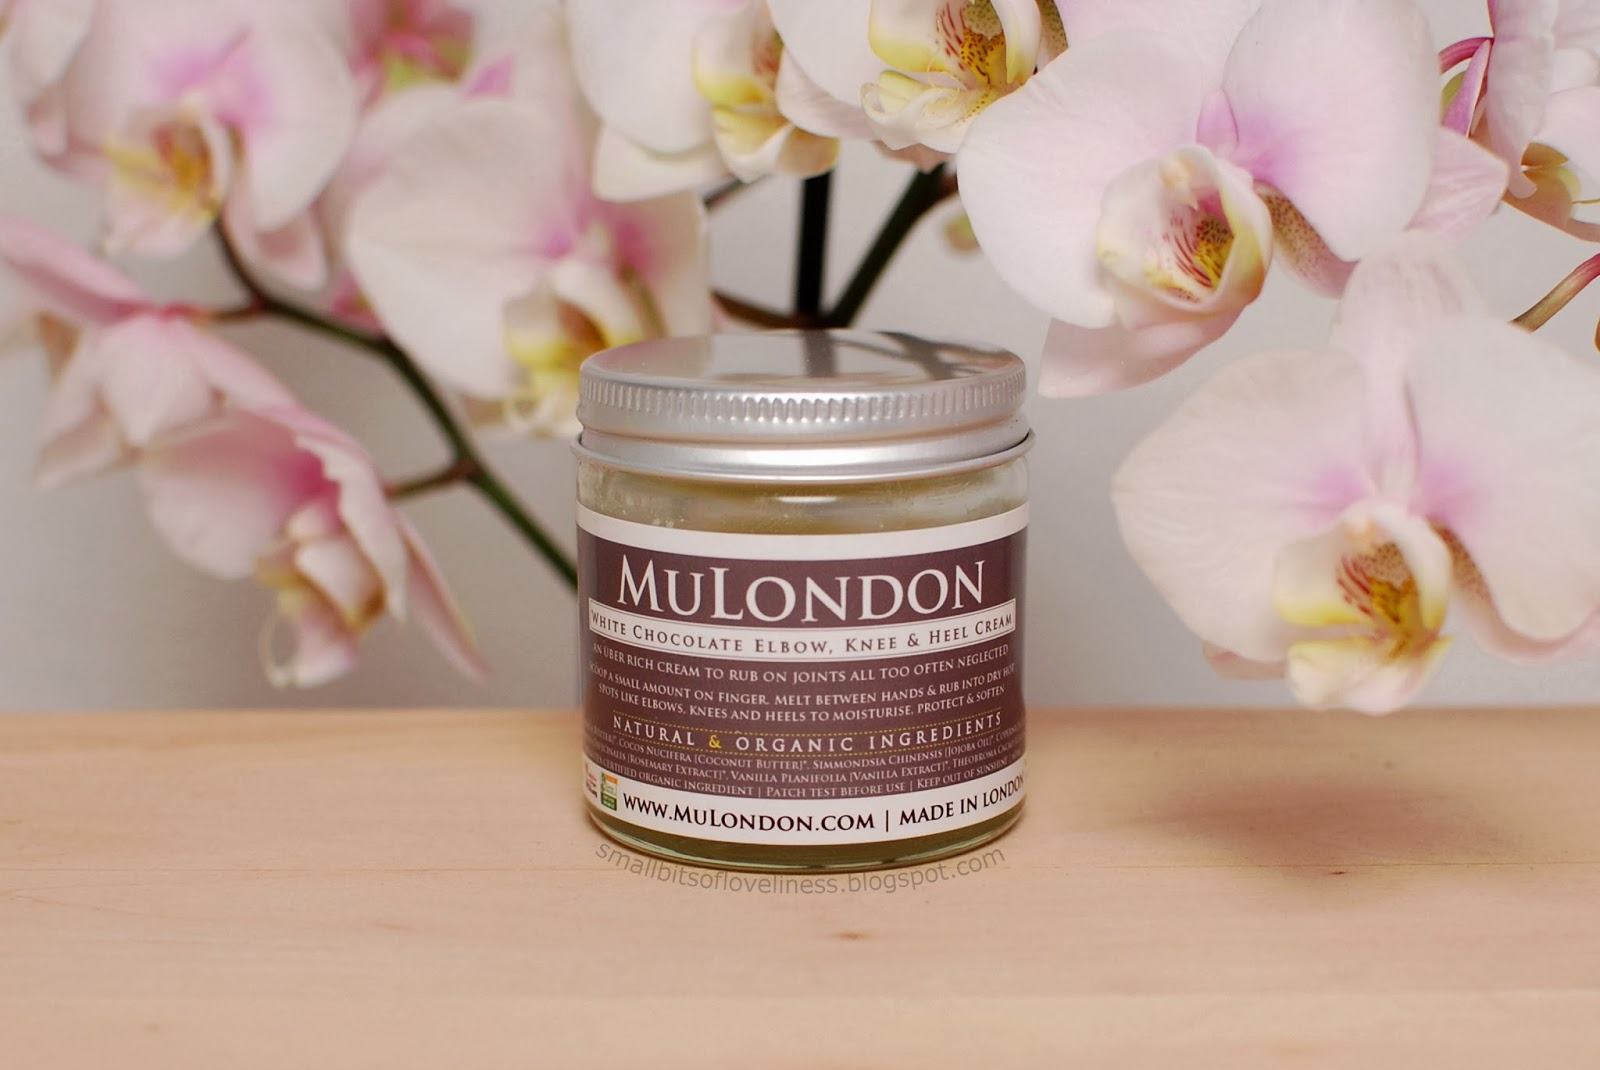 MuLondon White Chocolate Elbow, Knee & Heel Cream